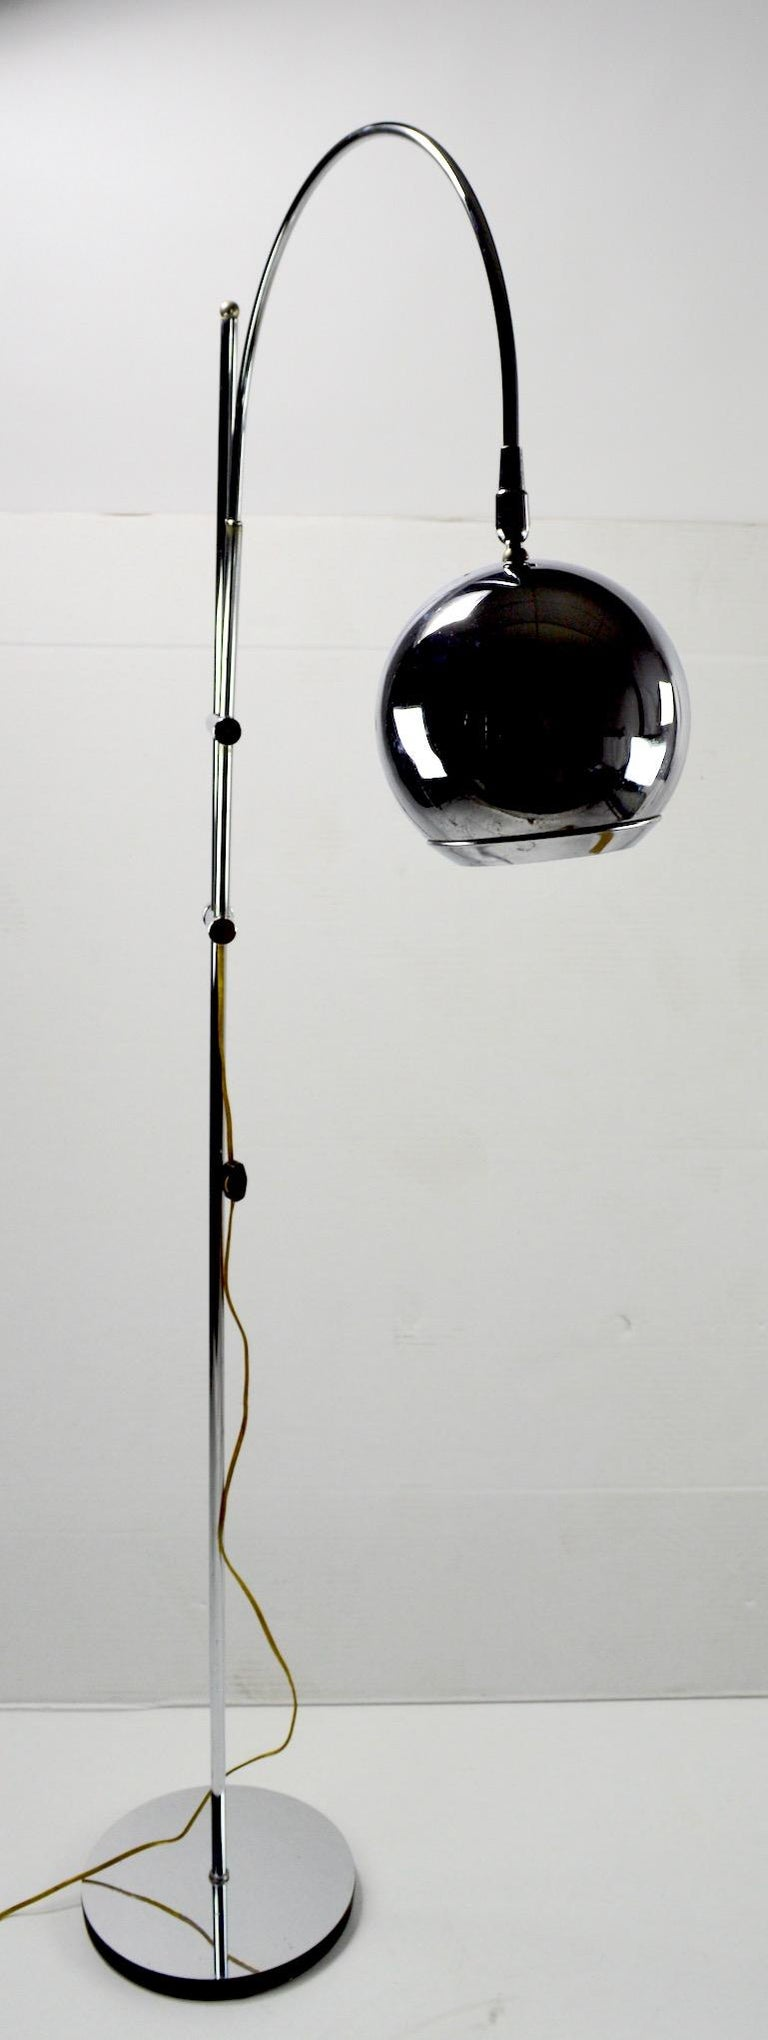 Adjustable Chrome Arc Lamp with Eyeball Shade For Sale 6